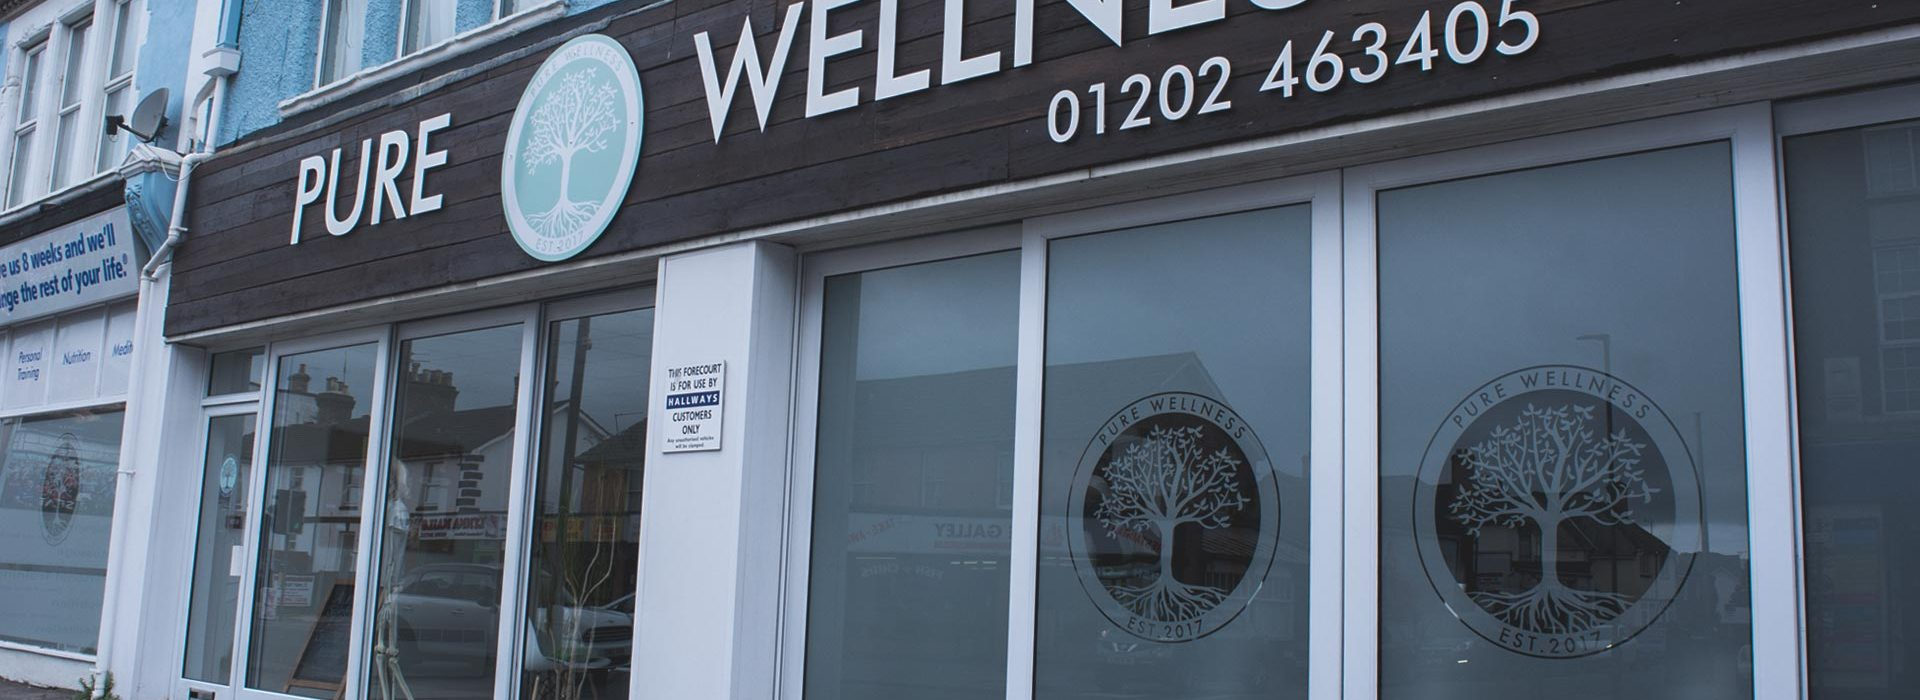 Portfolio - Pure Wellness - Shop Sign